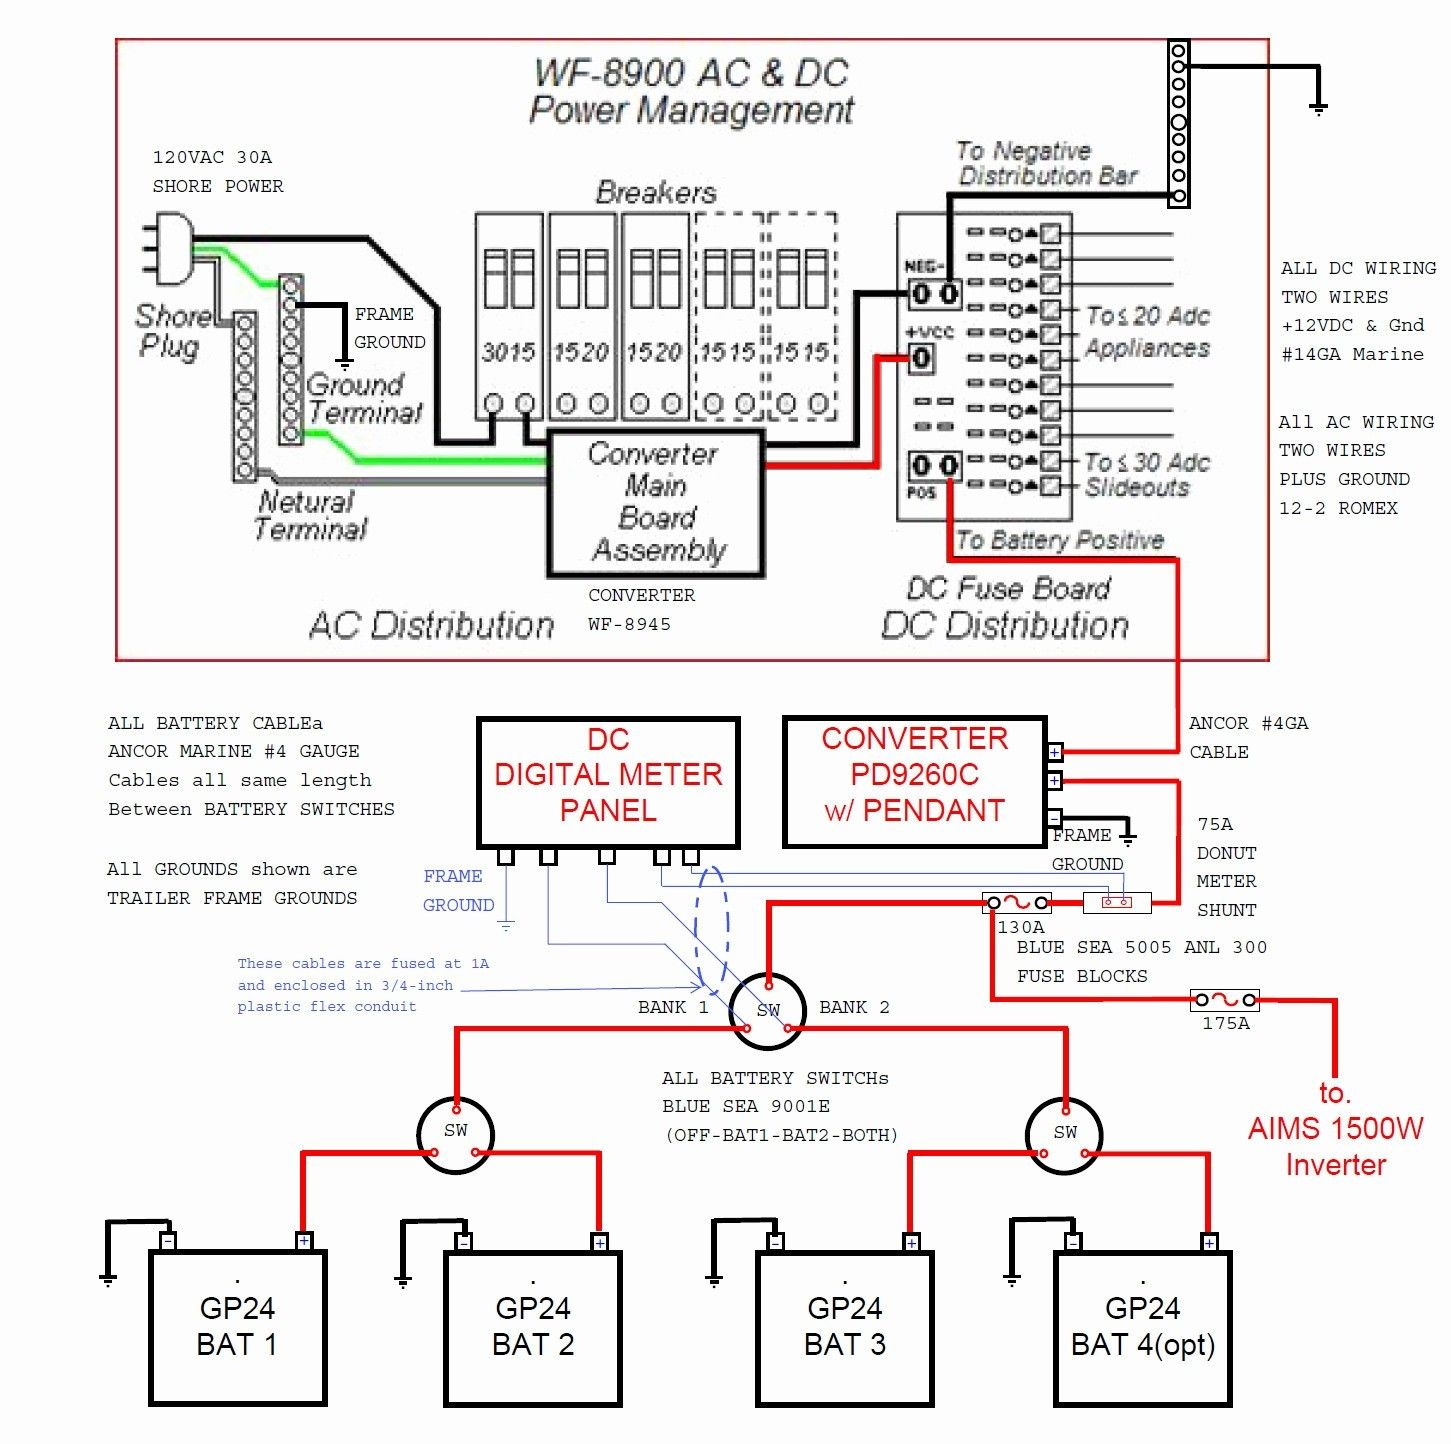 s power wiring diagram manual e book rv s power wiring diagram [ 1451 x 1444 Pixel ]